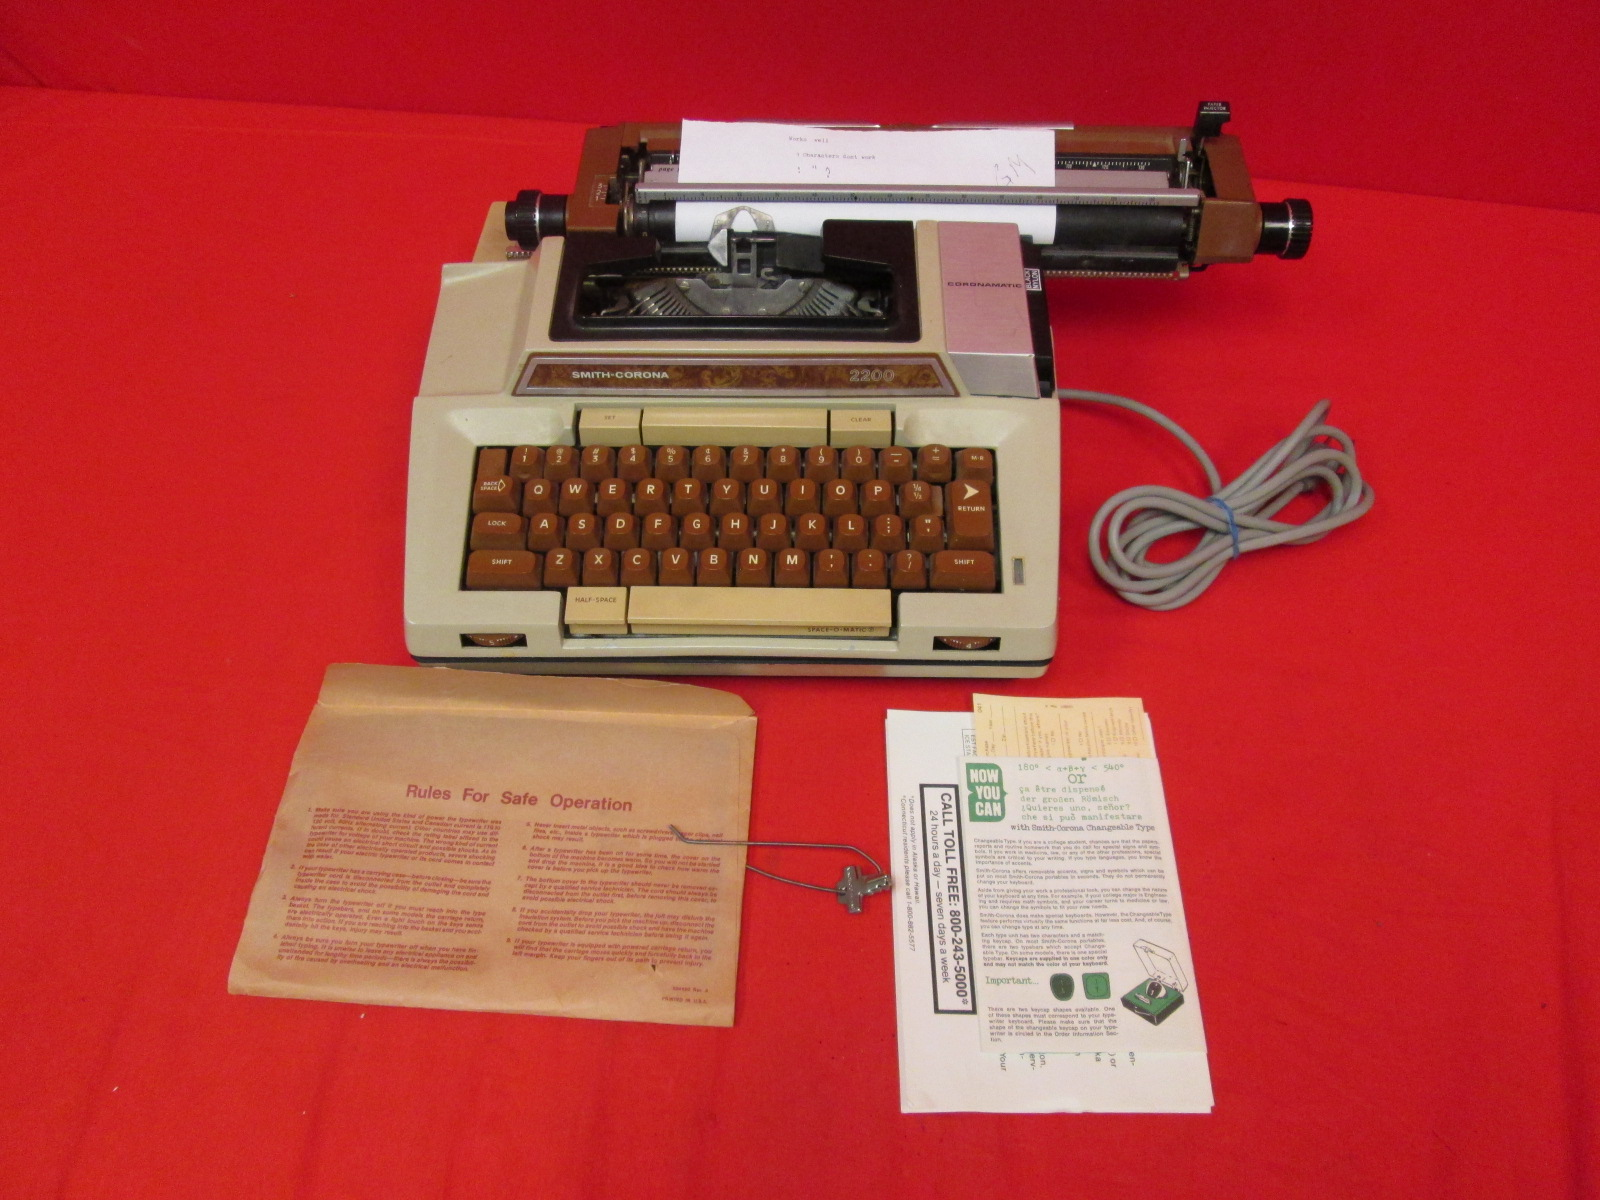 Smith Corona Scm Coronamatic 2200 Typewriter